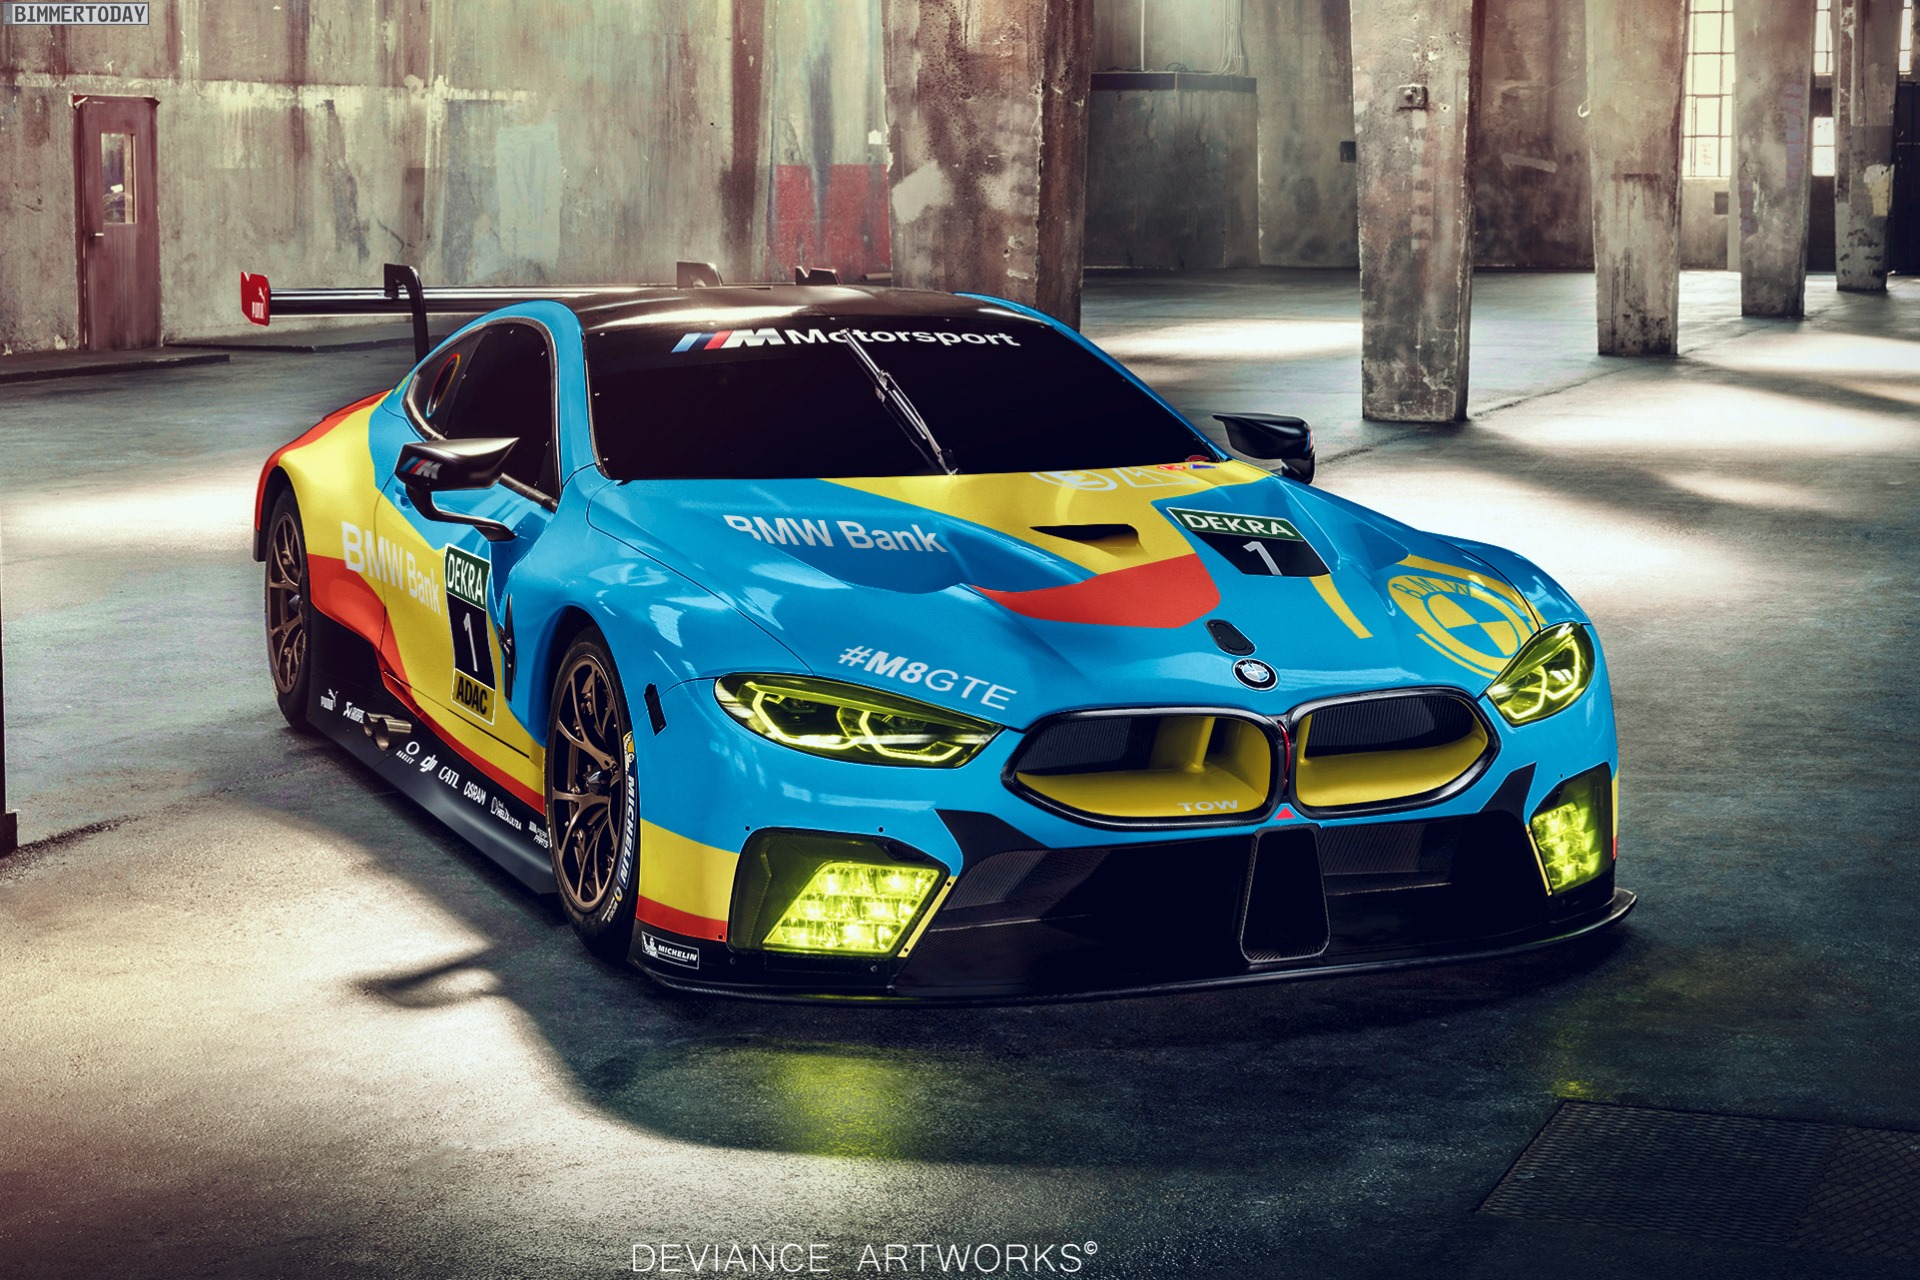 Bmw M8 Gte Art Car So Sch 246 N K 246 Nnte Das Art Car 20 Werden